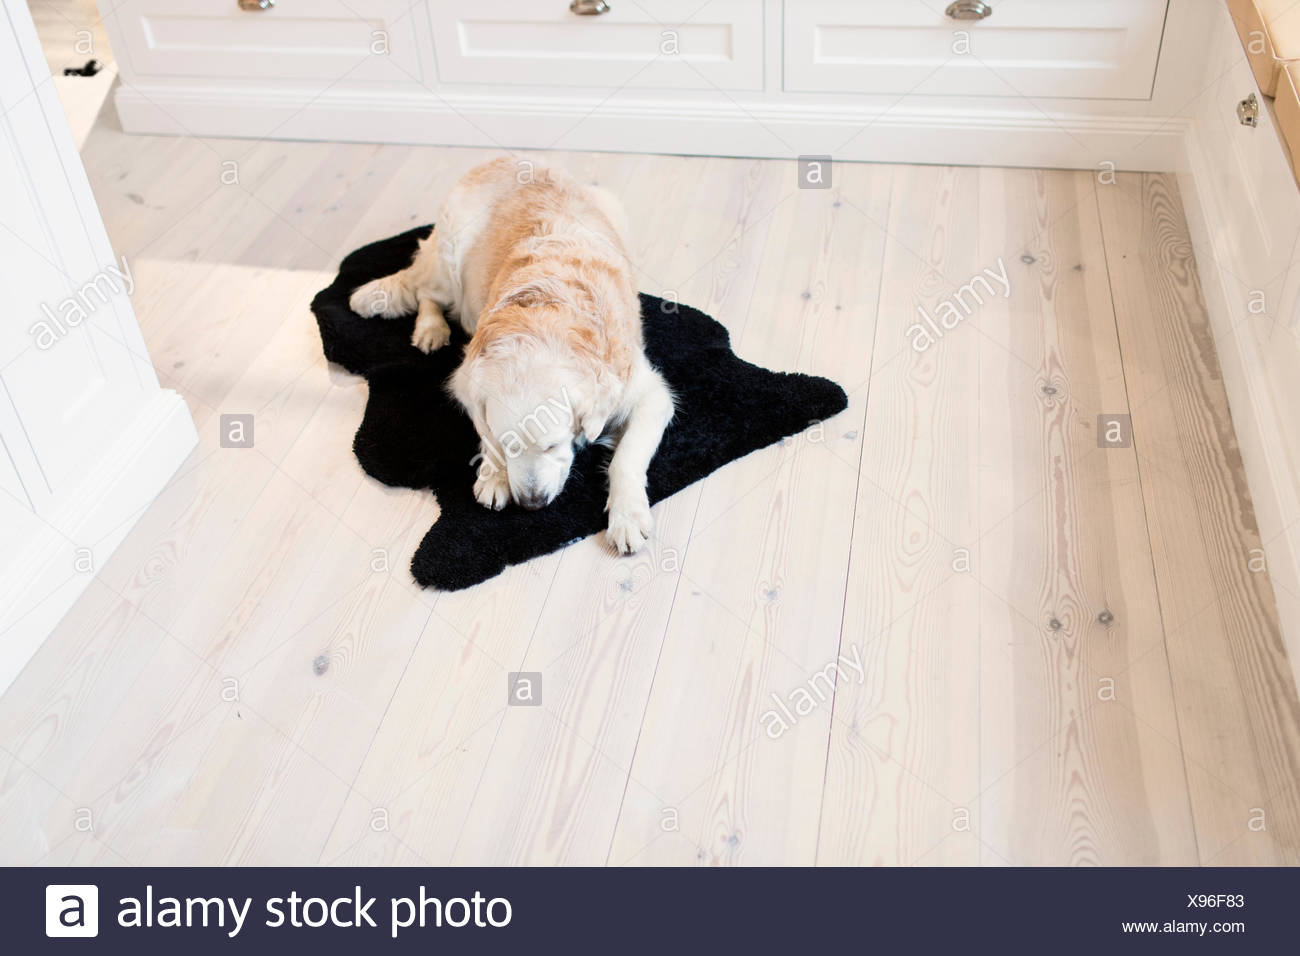 High angle view of dog relaxing on rug in kitchen - Stock Image